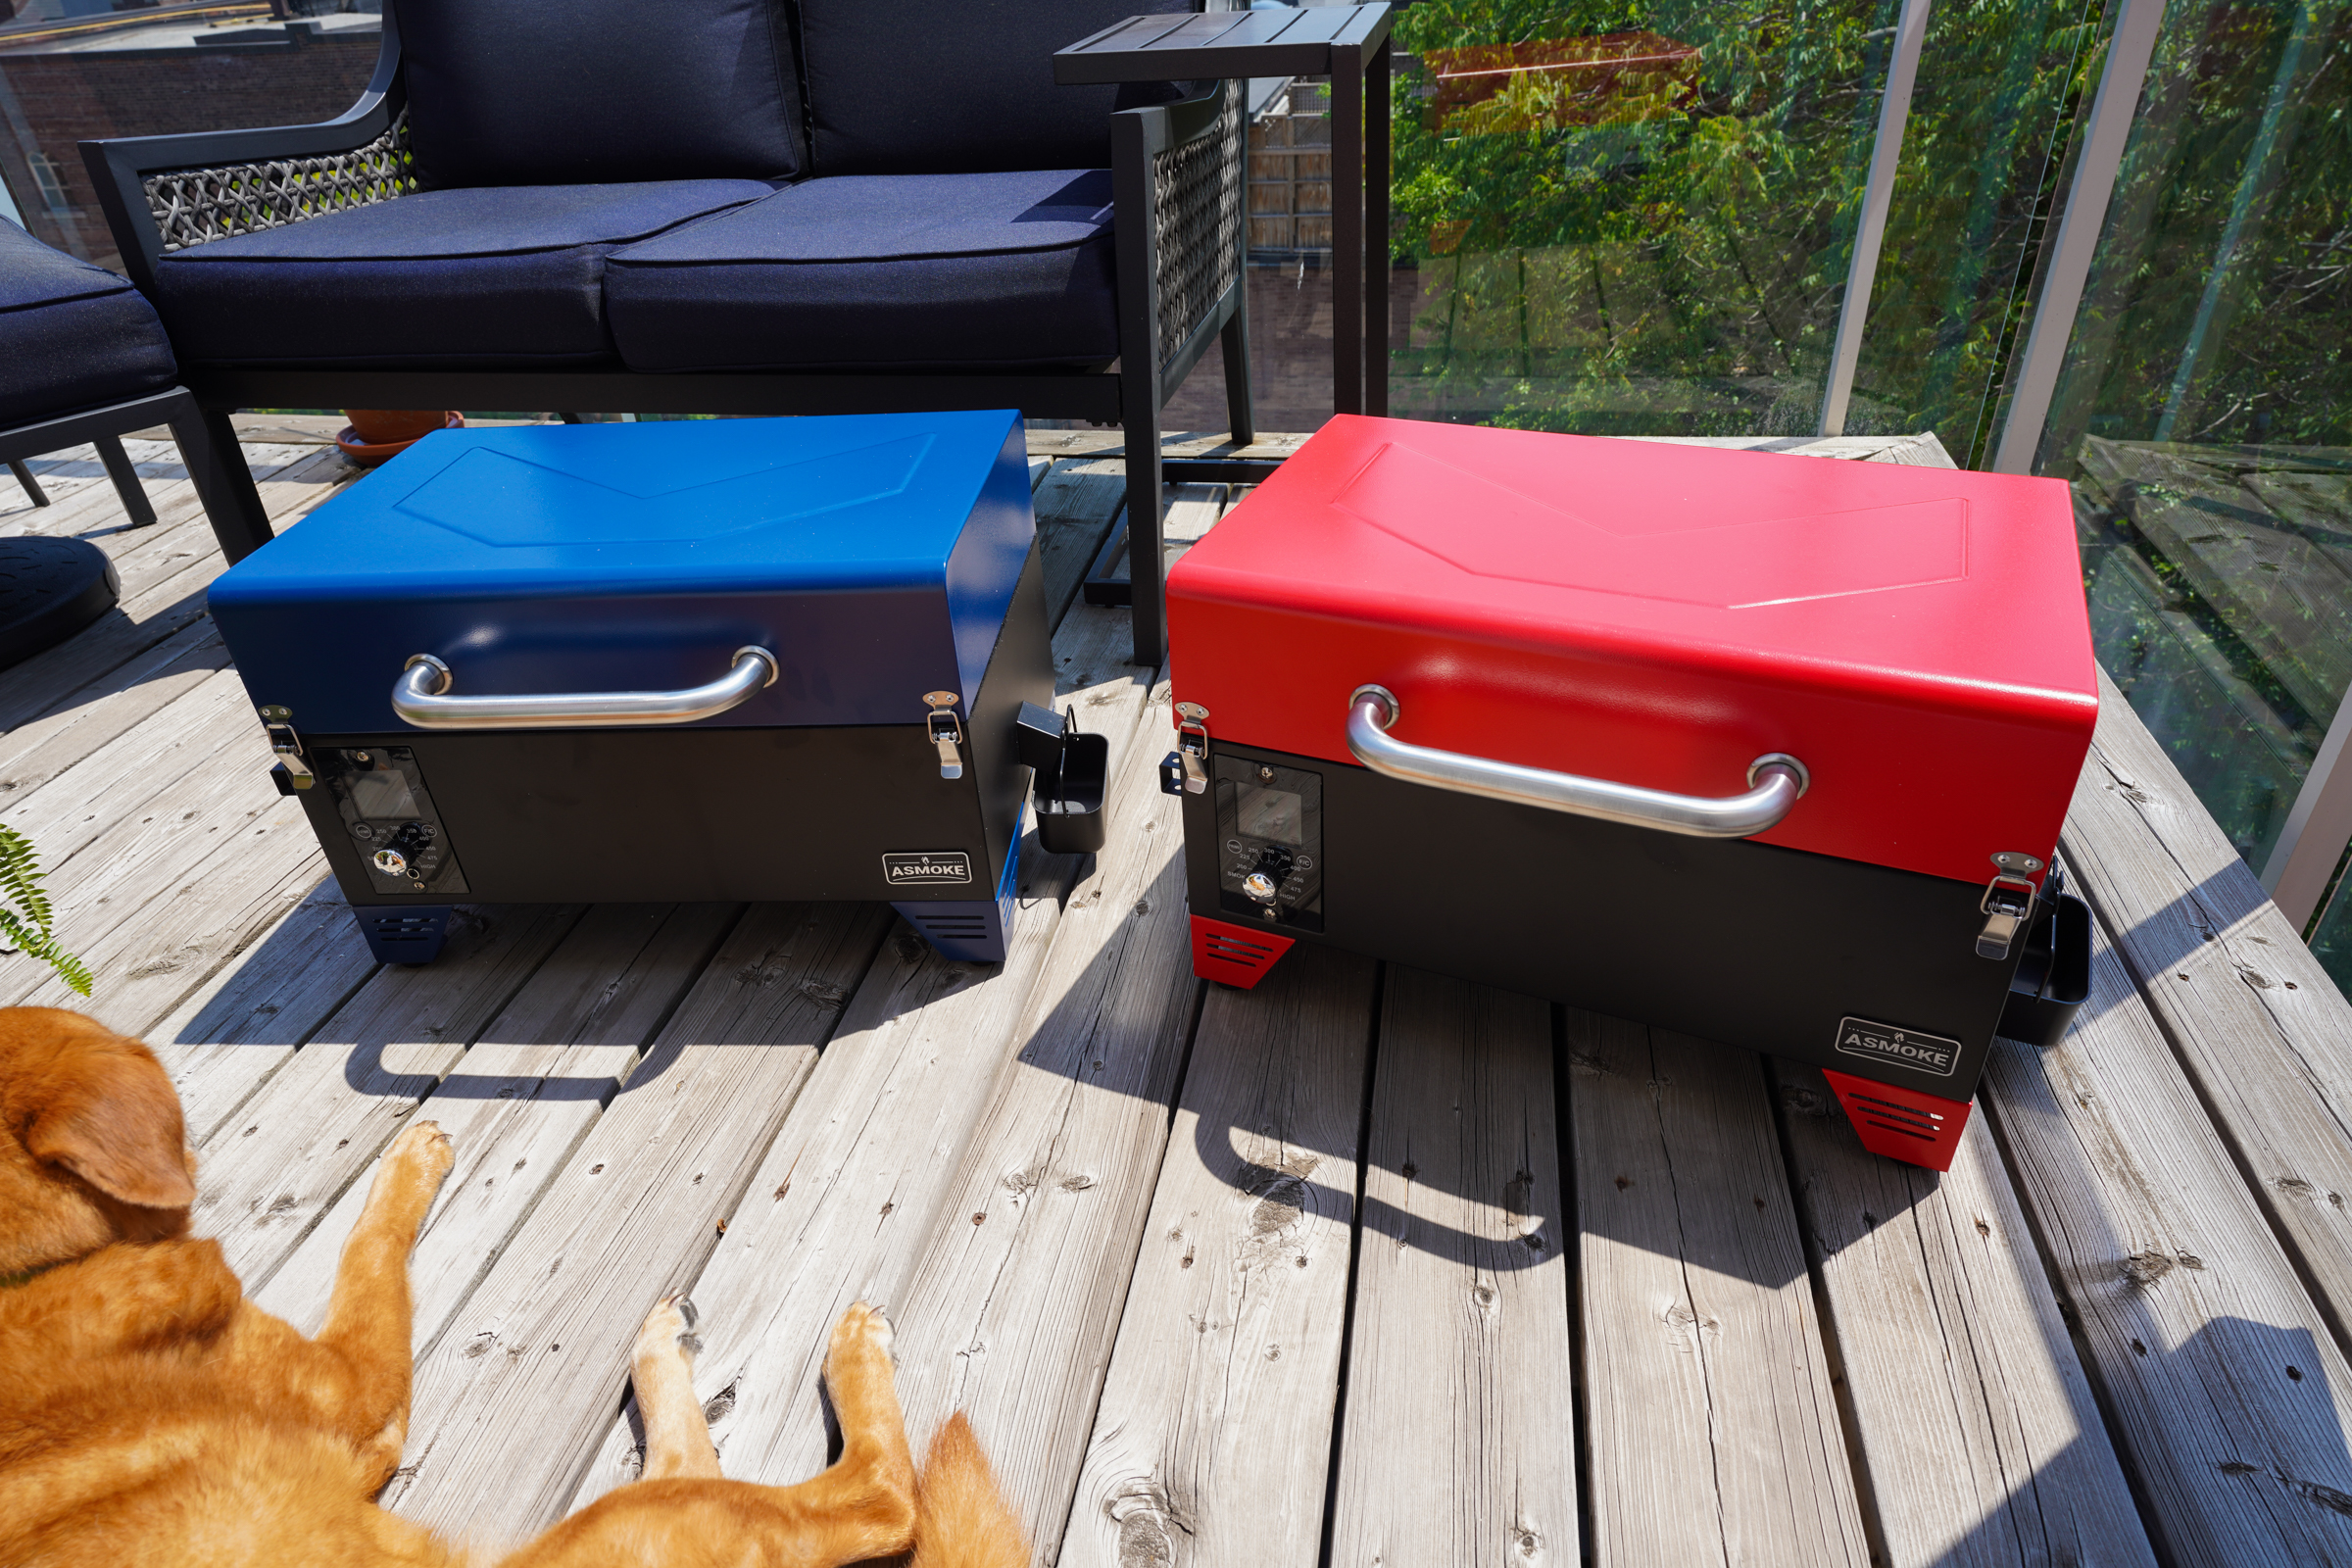 Asmoke's portable pellet grill is super affordable and great for small spaces